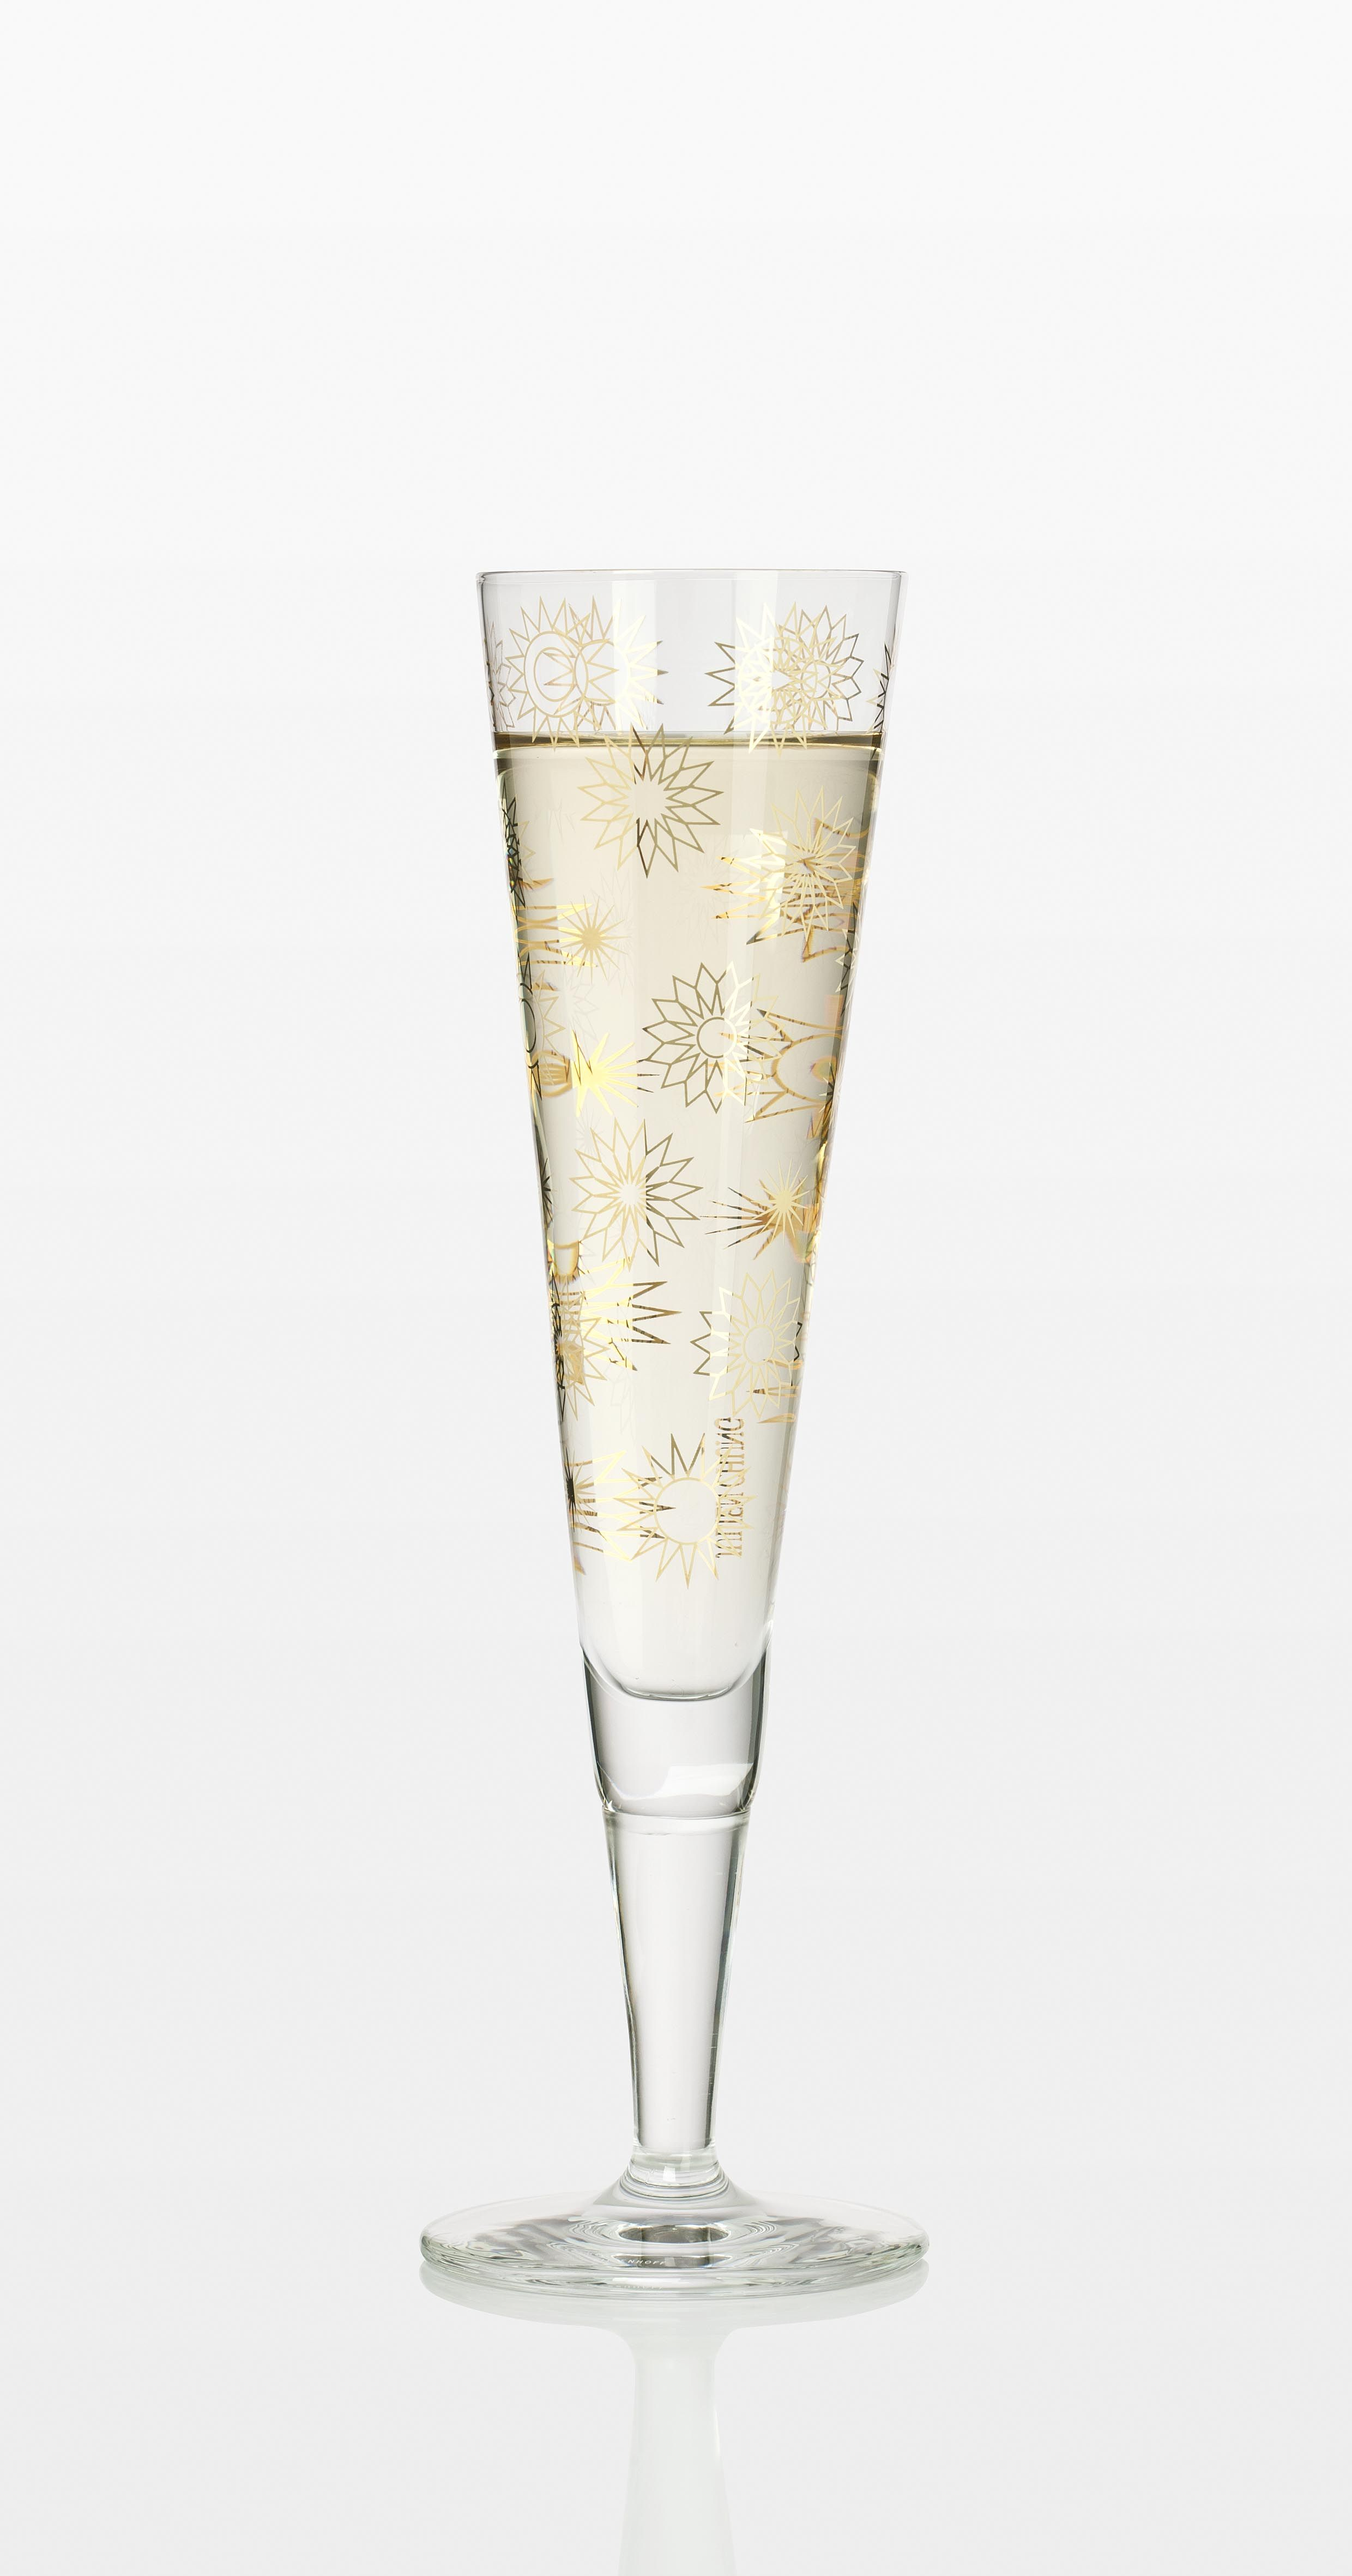 Champus Champagne Glass By Ritzenhoff 2015 Design By Julien Chung